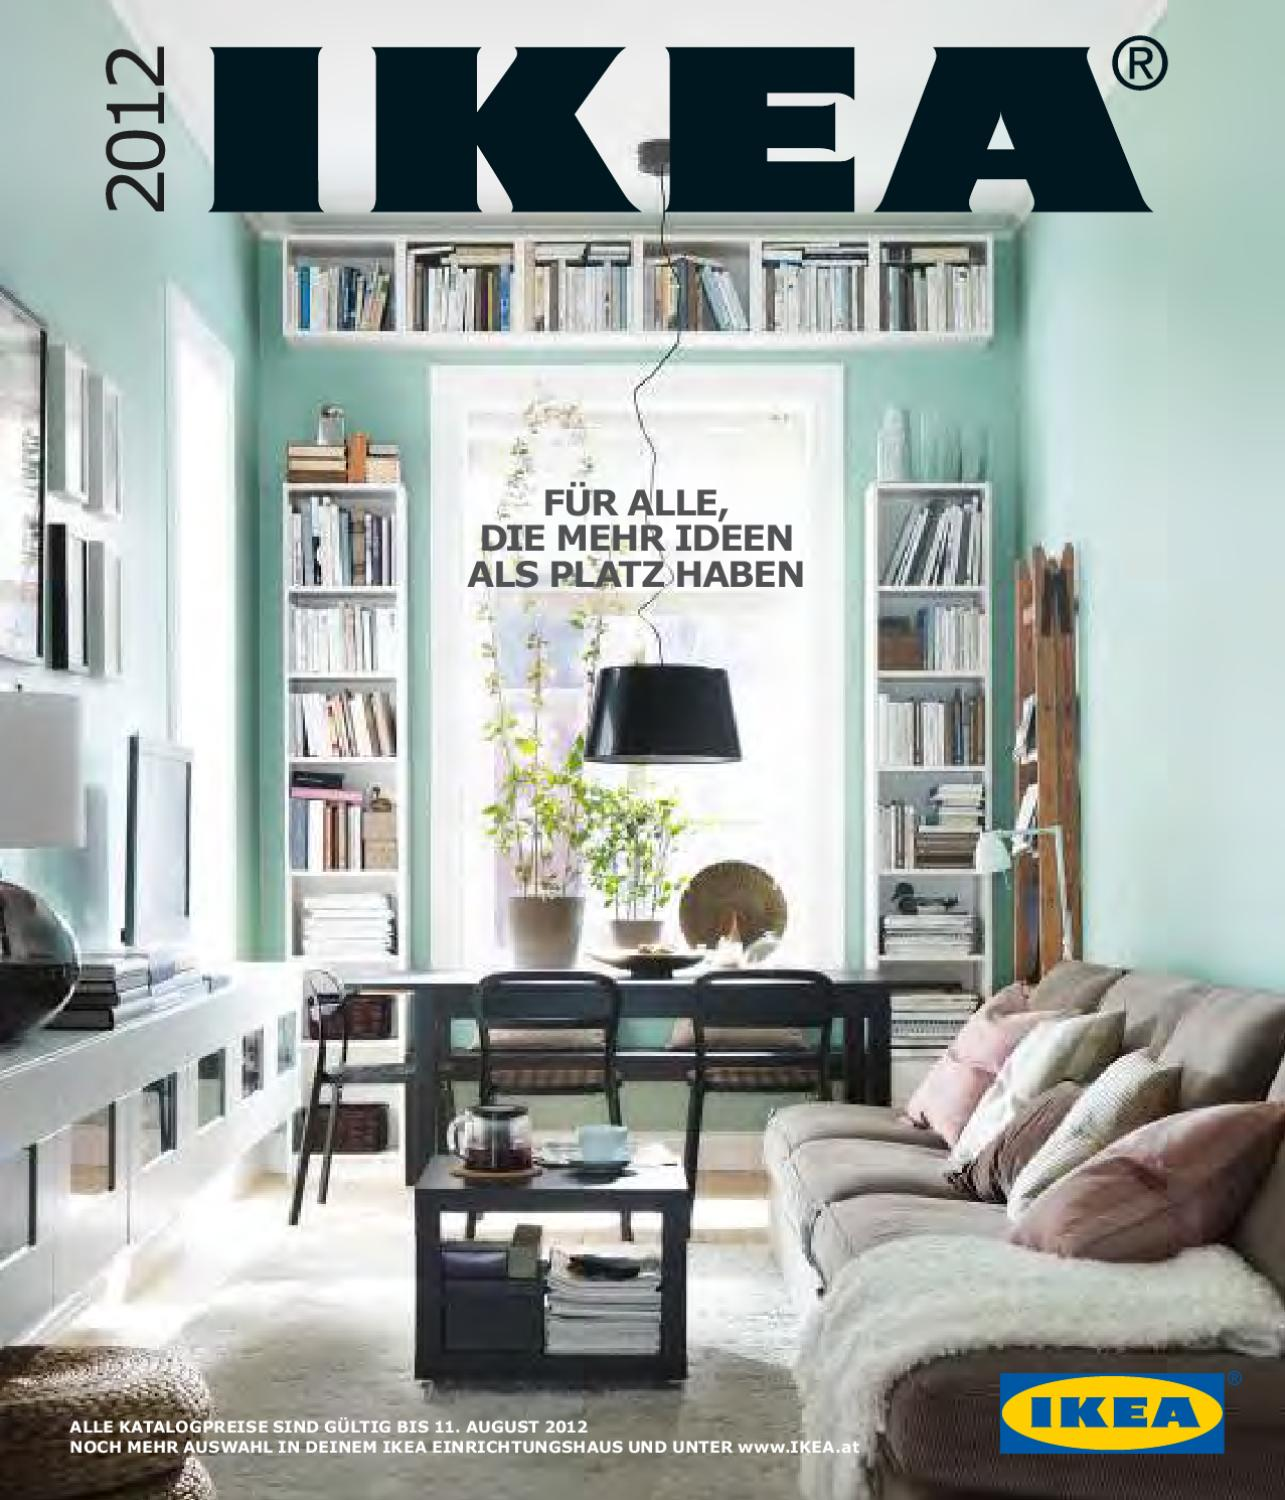 IKEA Katalog 20.11 11.08.2012 By Aktionsfinder GmbH   Issuu